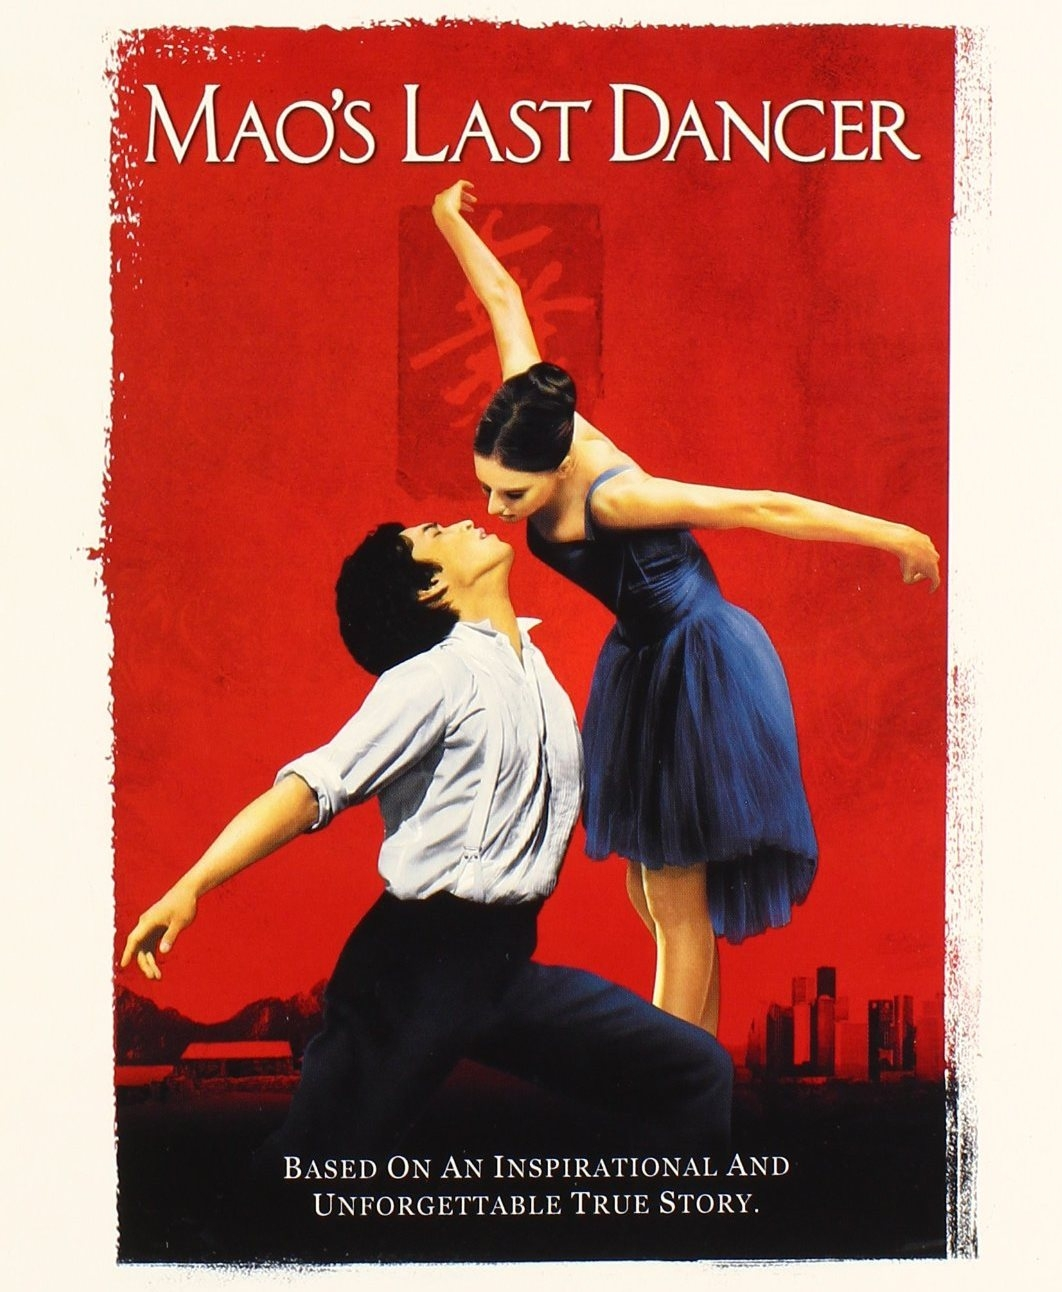 maos last dancer essay Open document below is an essay on mao's last dancer from anti essays, your source for research papers, essays, and term paper examples.